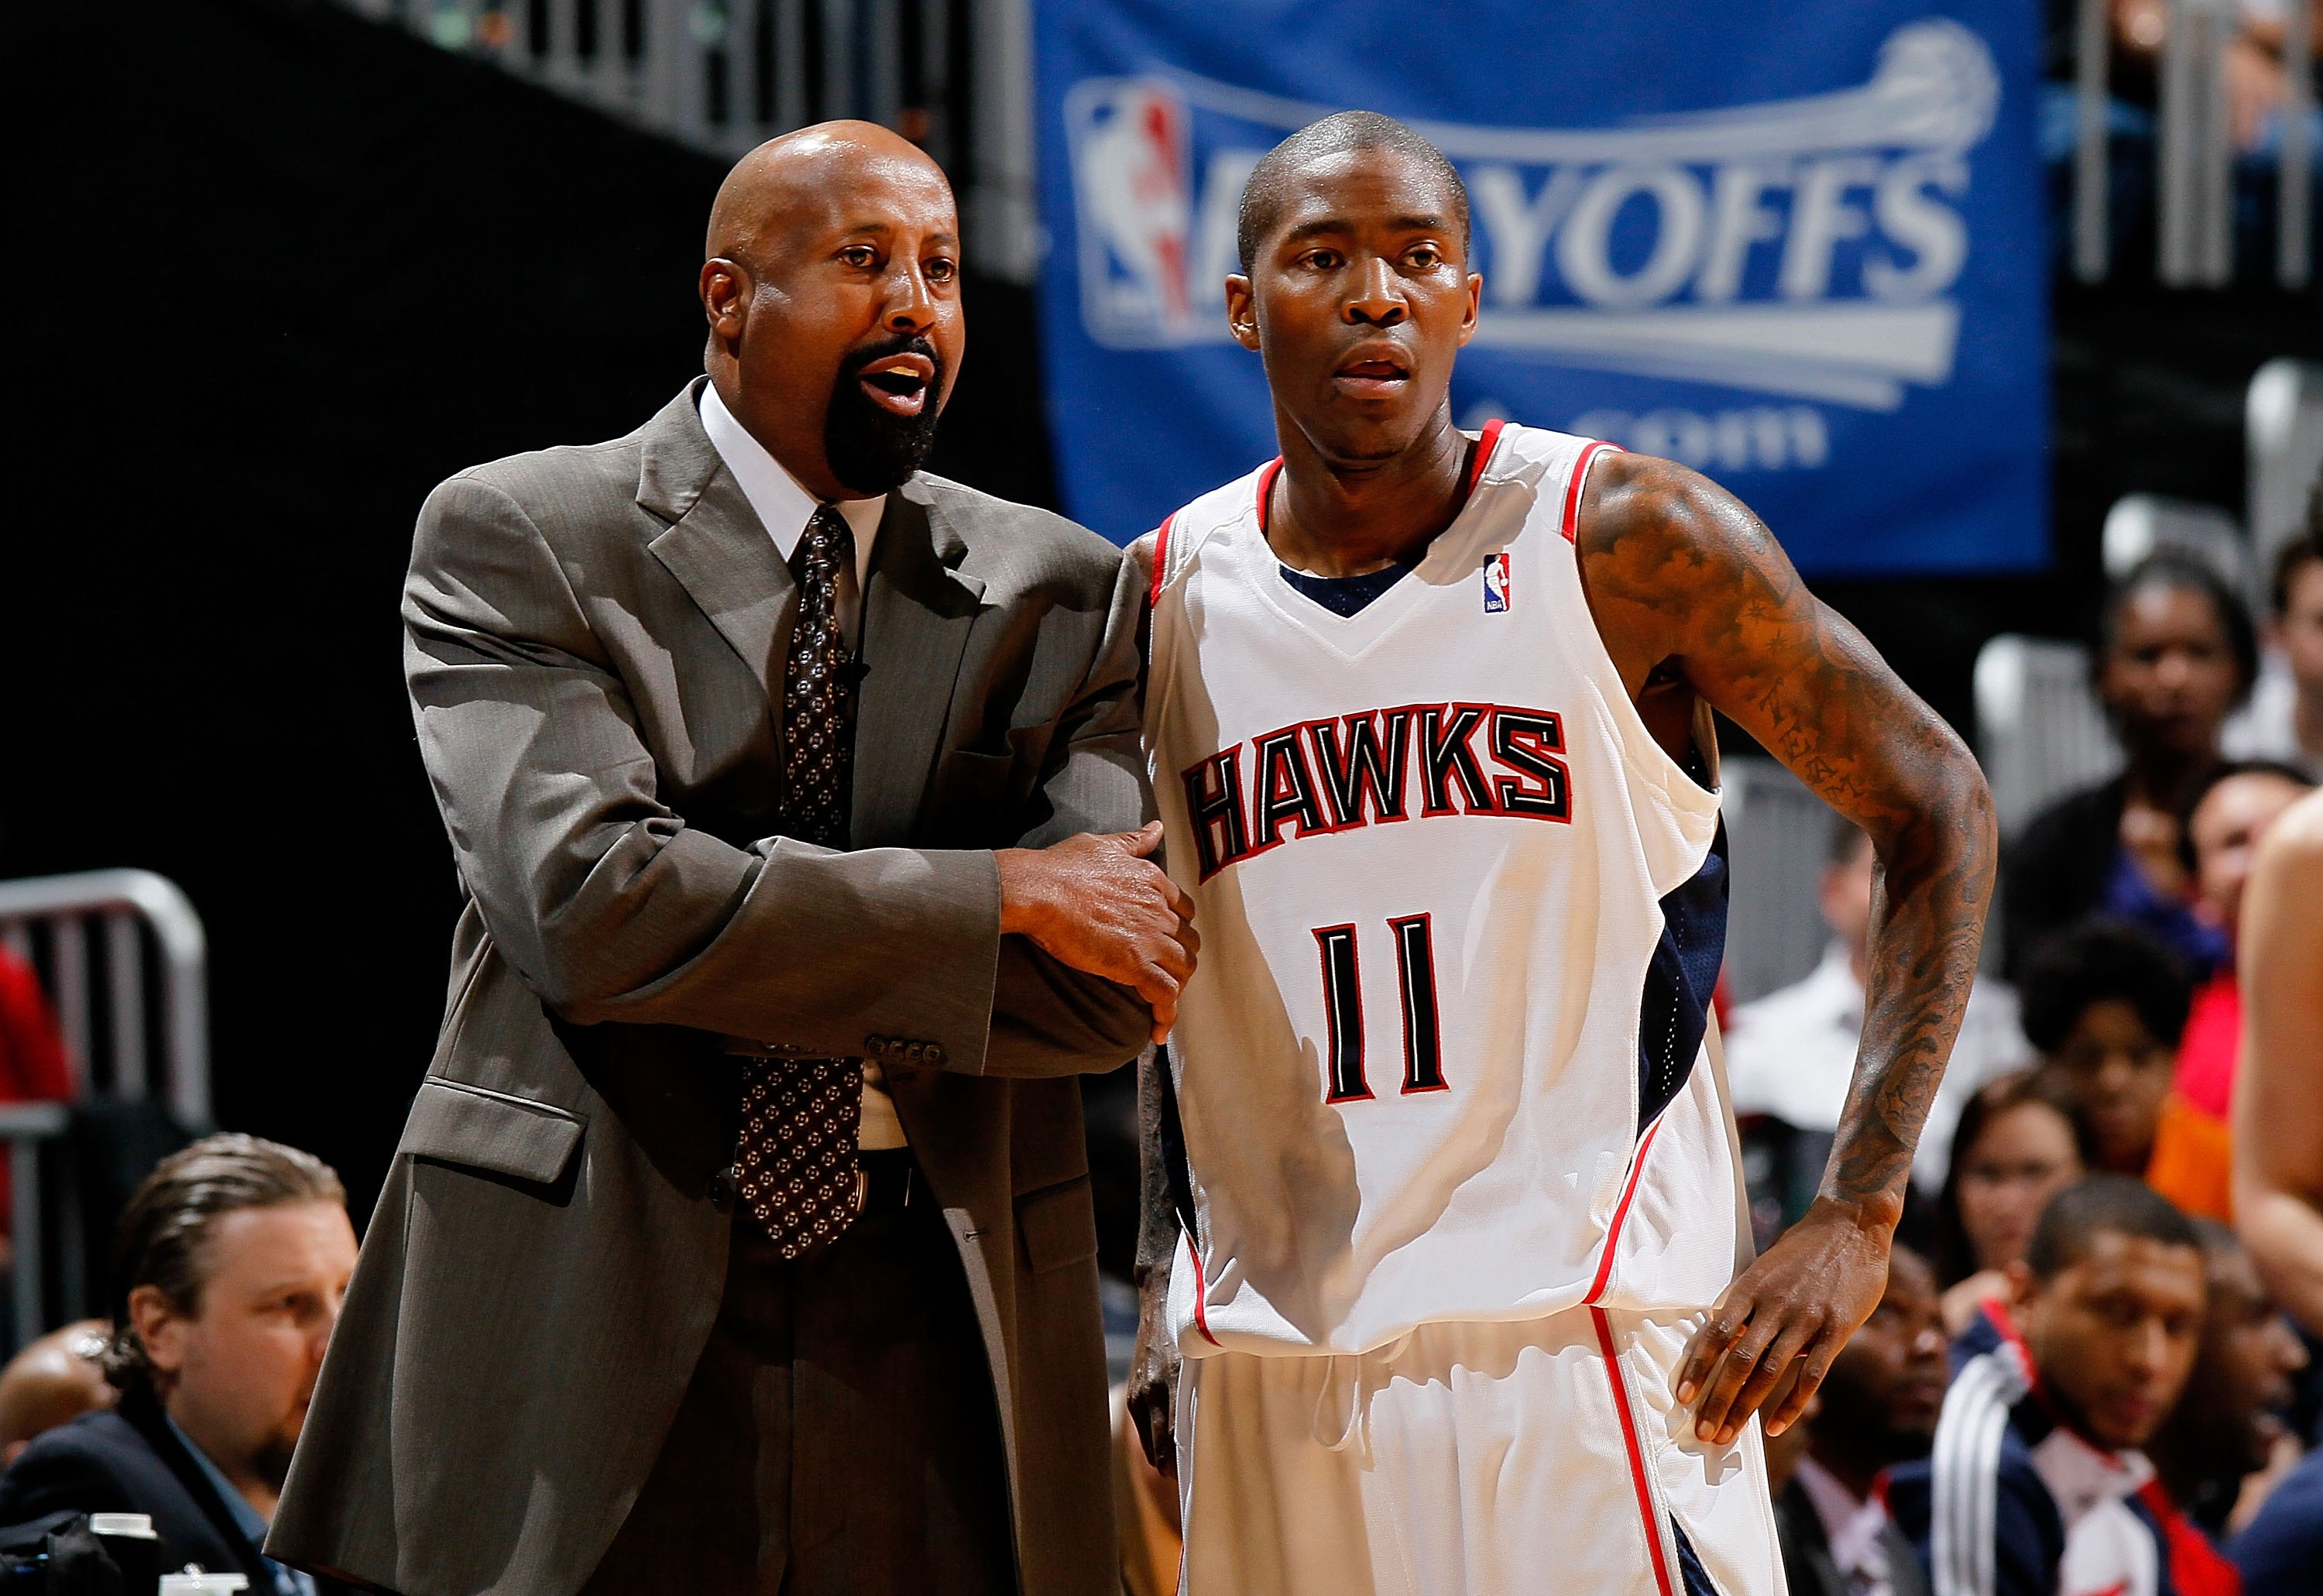 ATLANTA - MAY 10:  Head coach Mike Woodson and Jamal Crawford #11 of the Atlanta Hawks against the Orlando Magic during Game Four of the Eastern Conference Semifinals of the 2010 NBA Playoffs at Philips Arena on May 10, 2010 in Atlanta, Georgia.  NOTE TO